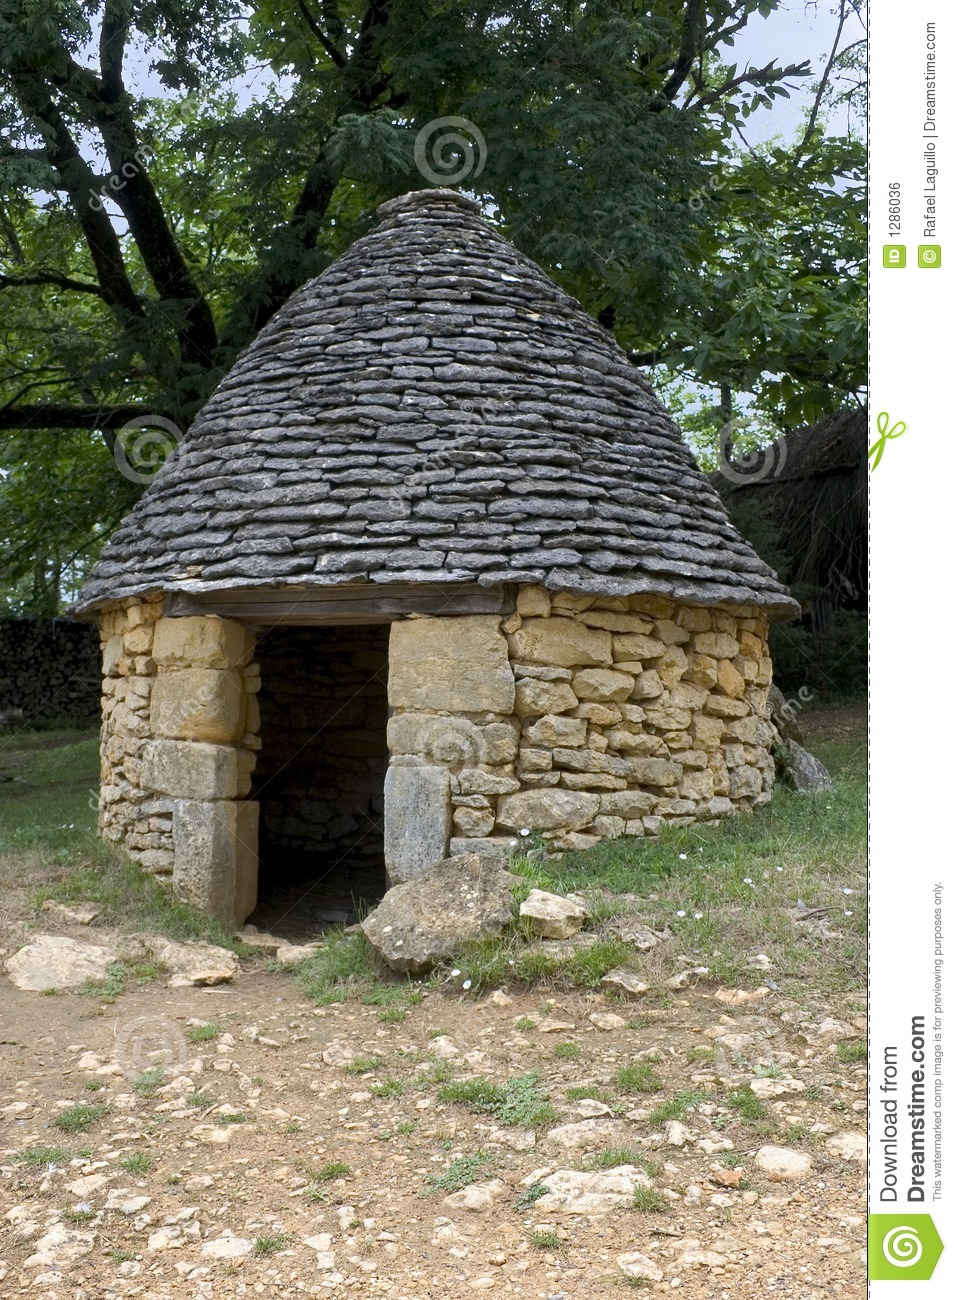 Stone Hut In Breuil France Royalty Free Stock Image